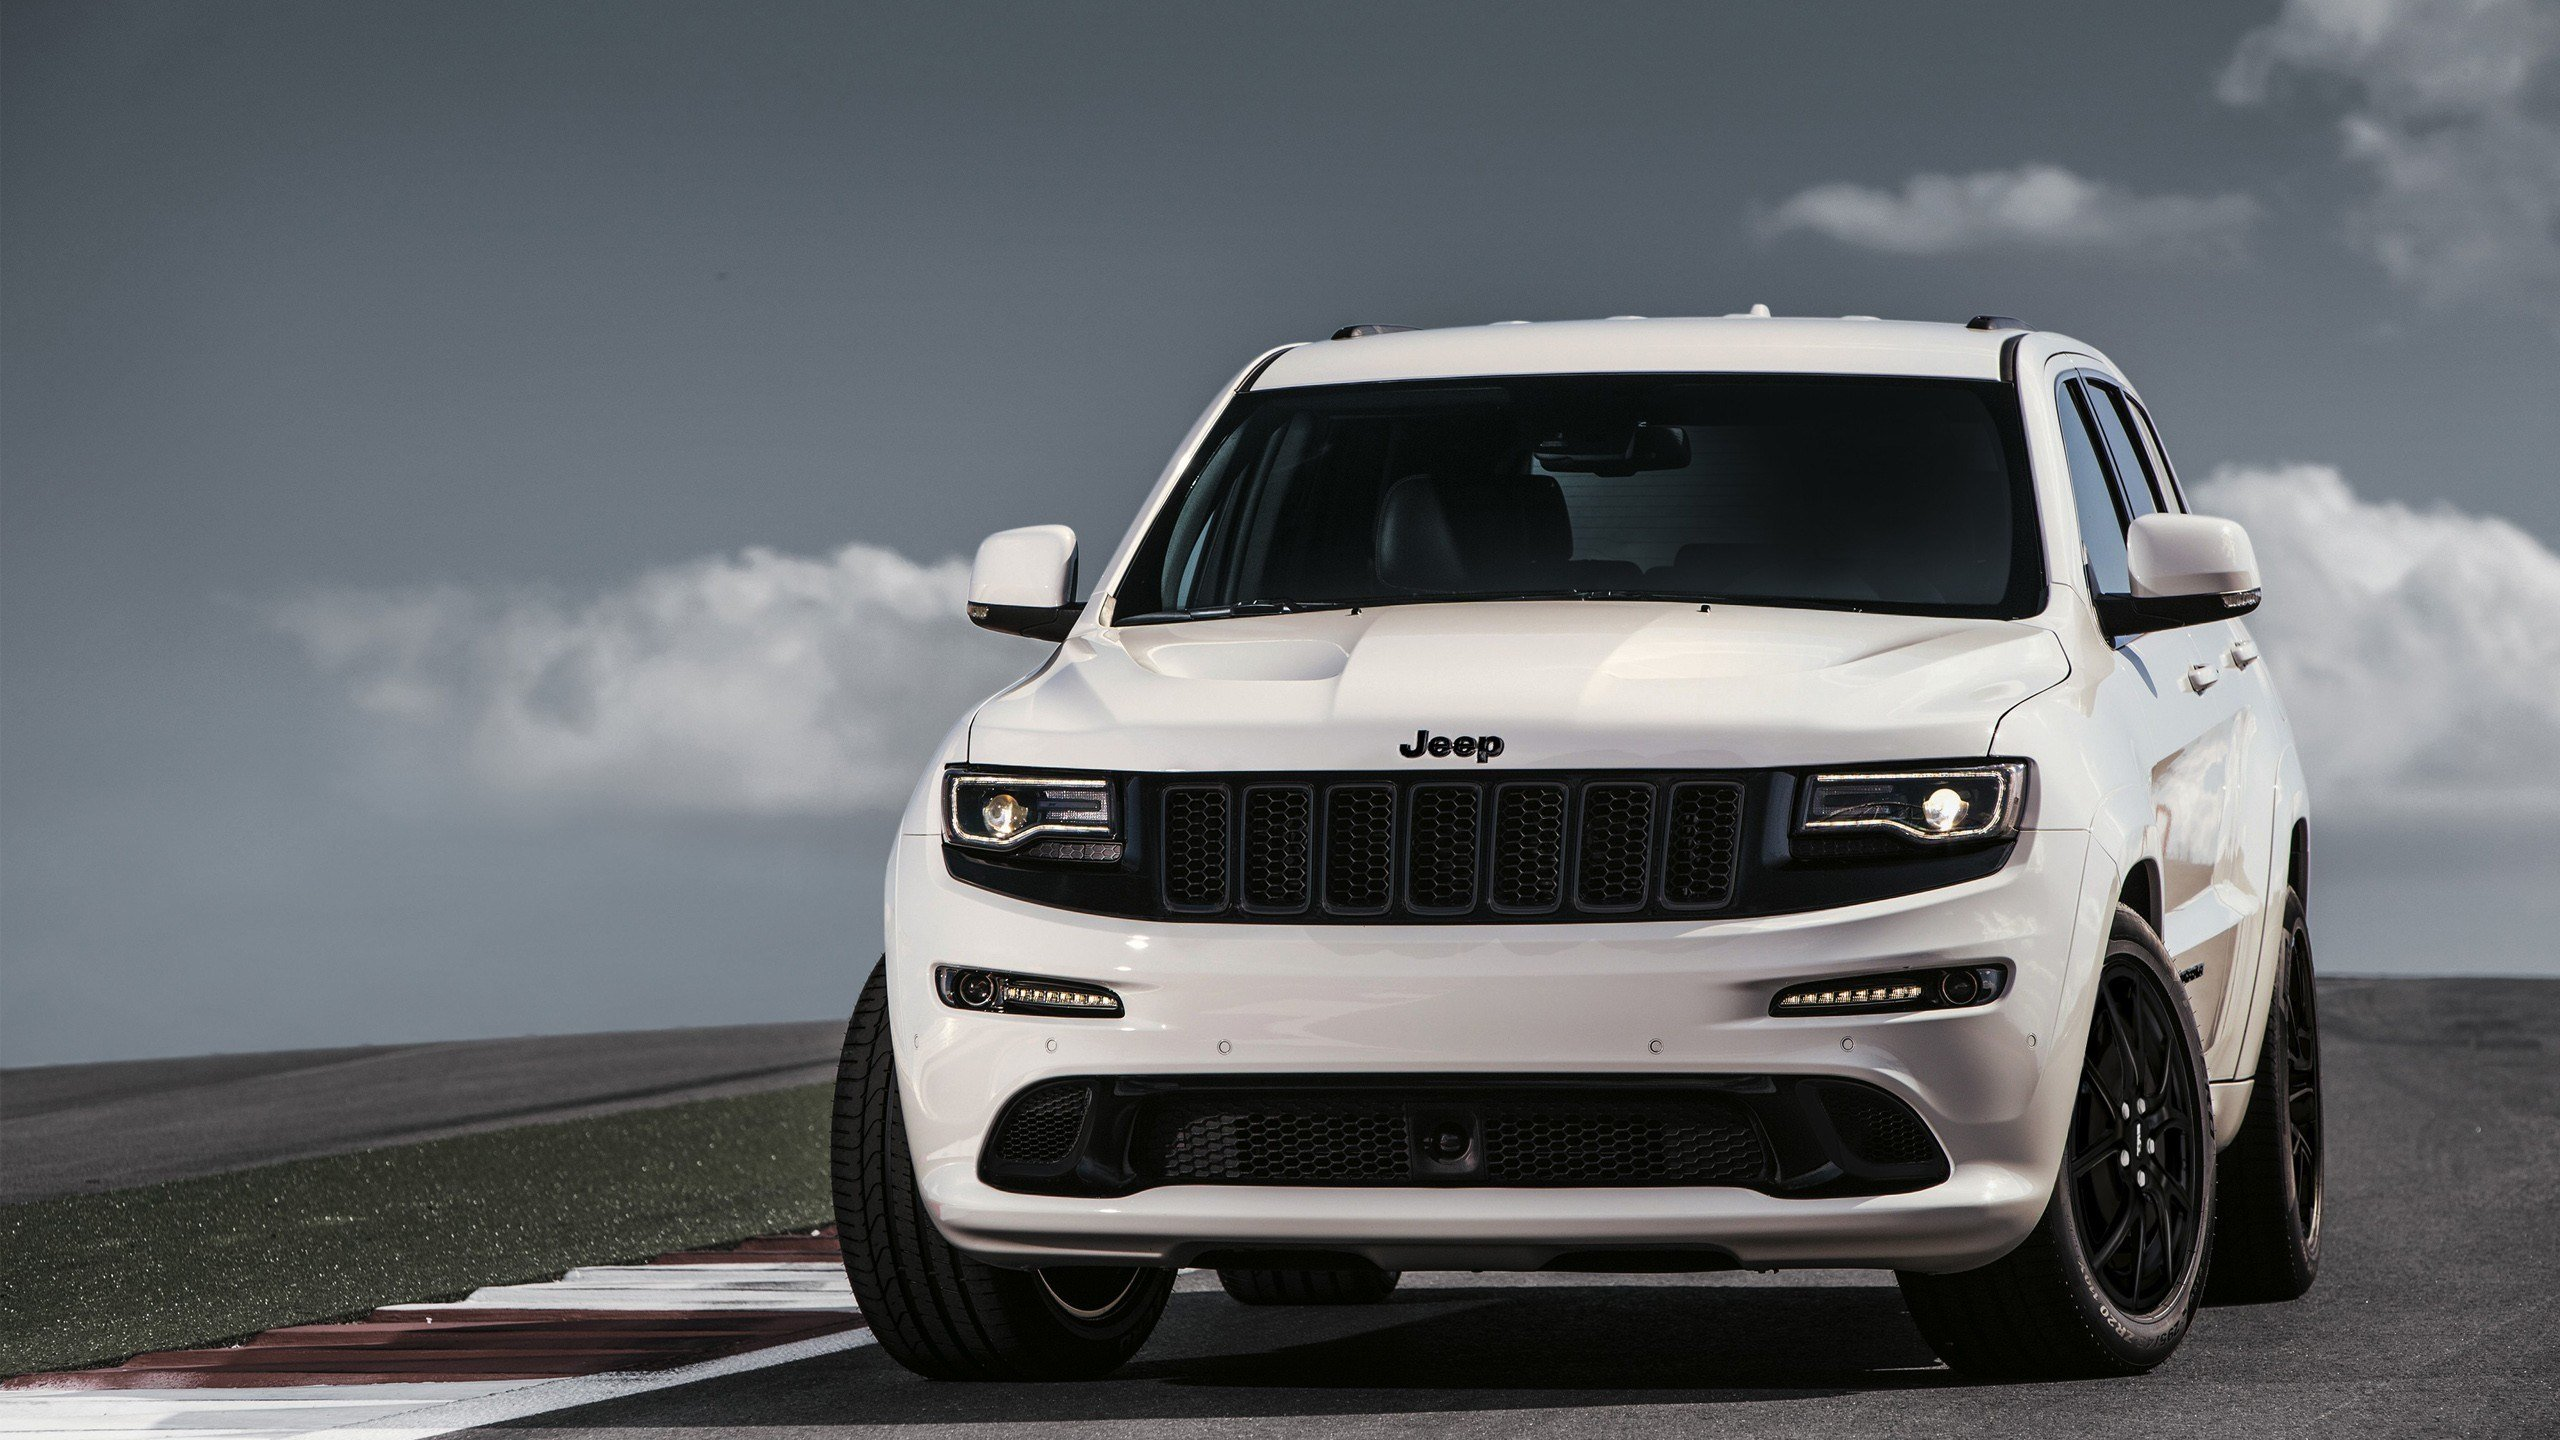 New 2017 Jeep Grand Cherokee Srt Wallpaper Hd Car Wallpapers On This Month